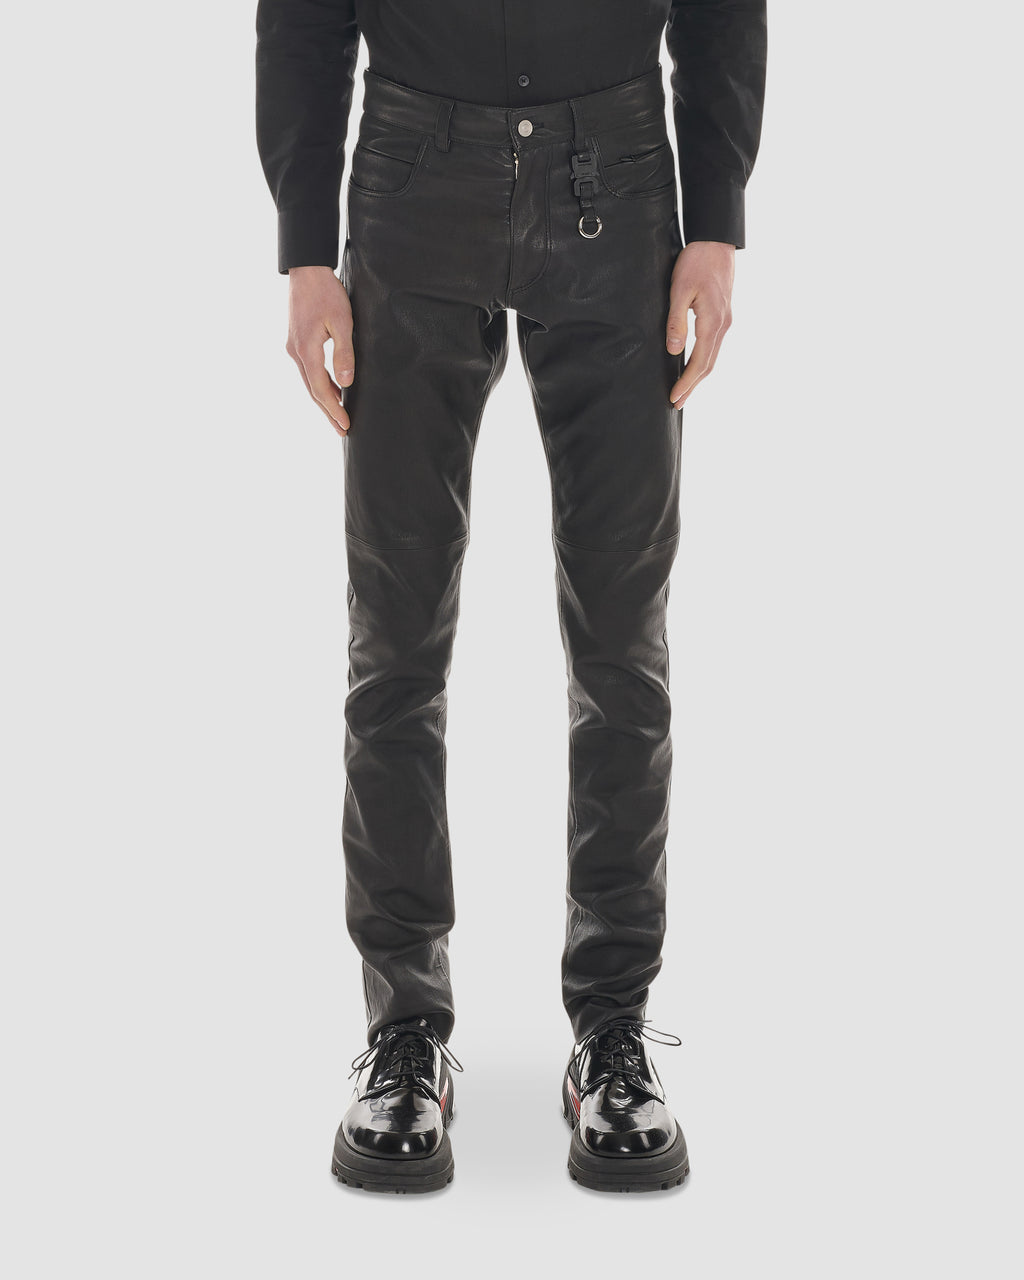 CLASSIC 5 PKT LEATHER PANT W KEYCHAIN PRE-ORDER